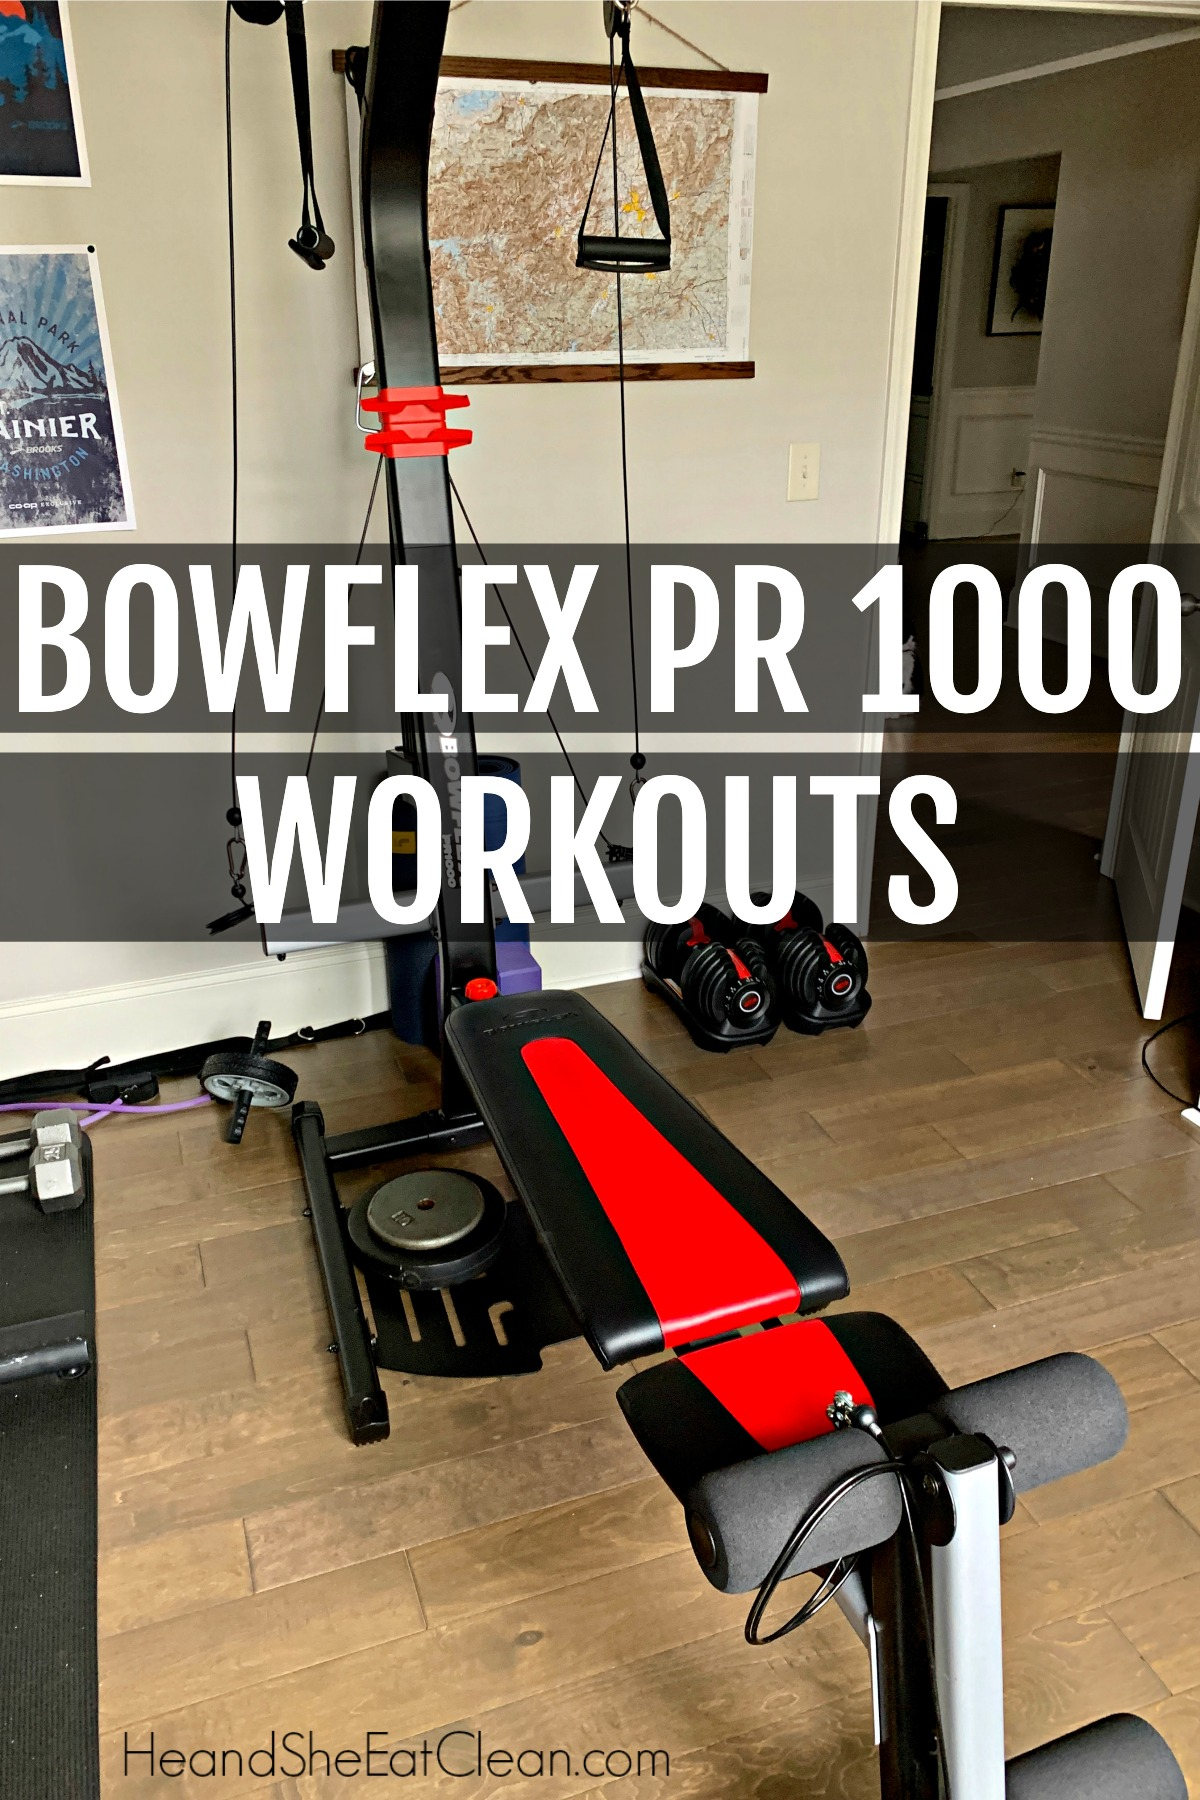 Bowflex PR 1000 Home Gym, red and black workout machine on wooden floors